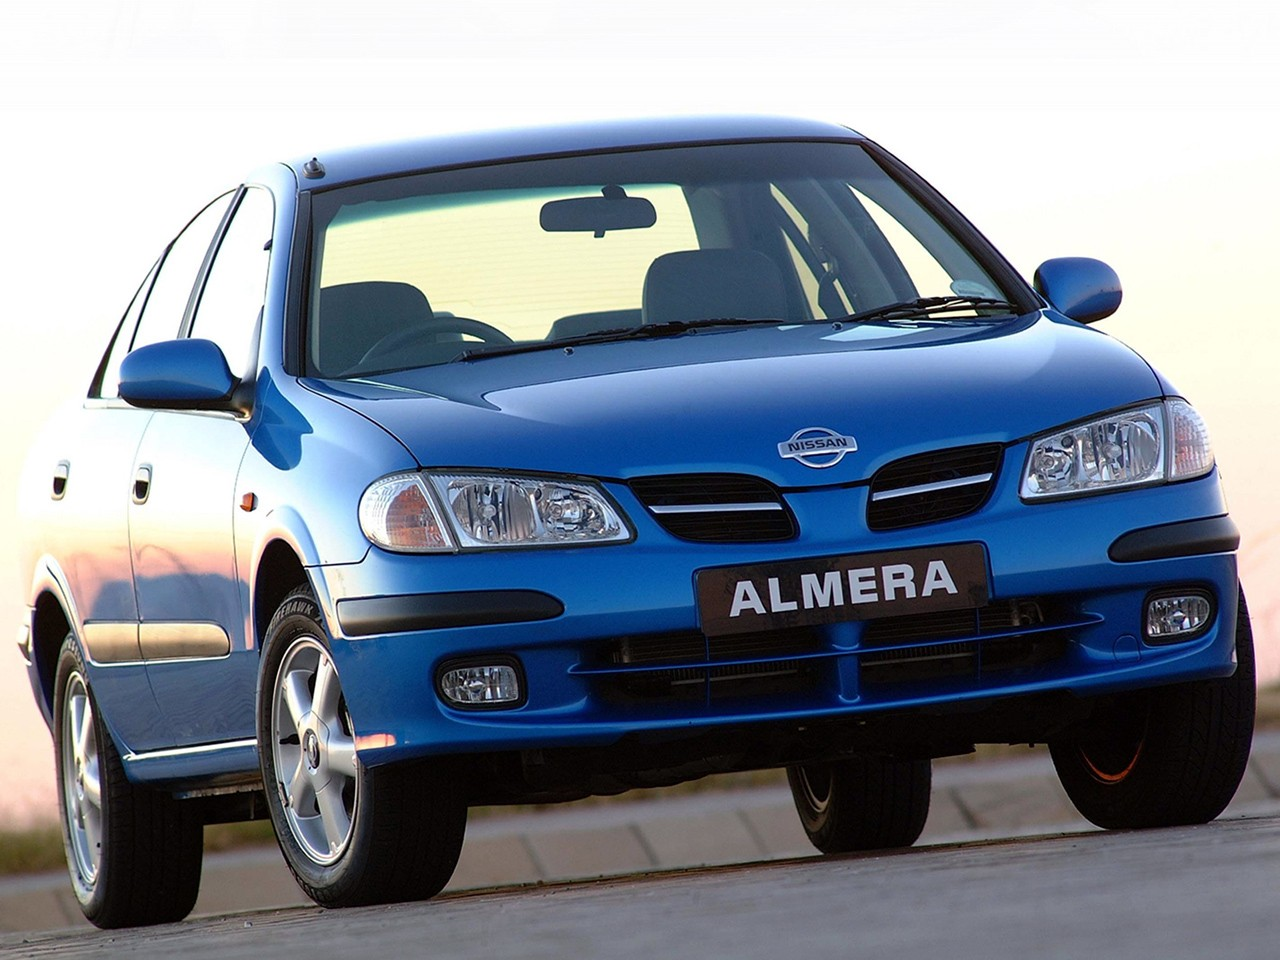 nissan almera pulsar 4 doors specs 2000 2001 2002. Black Bedroom Furniture Sets. Home Design Ideas